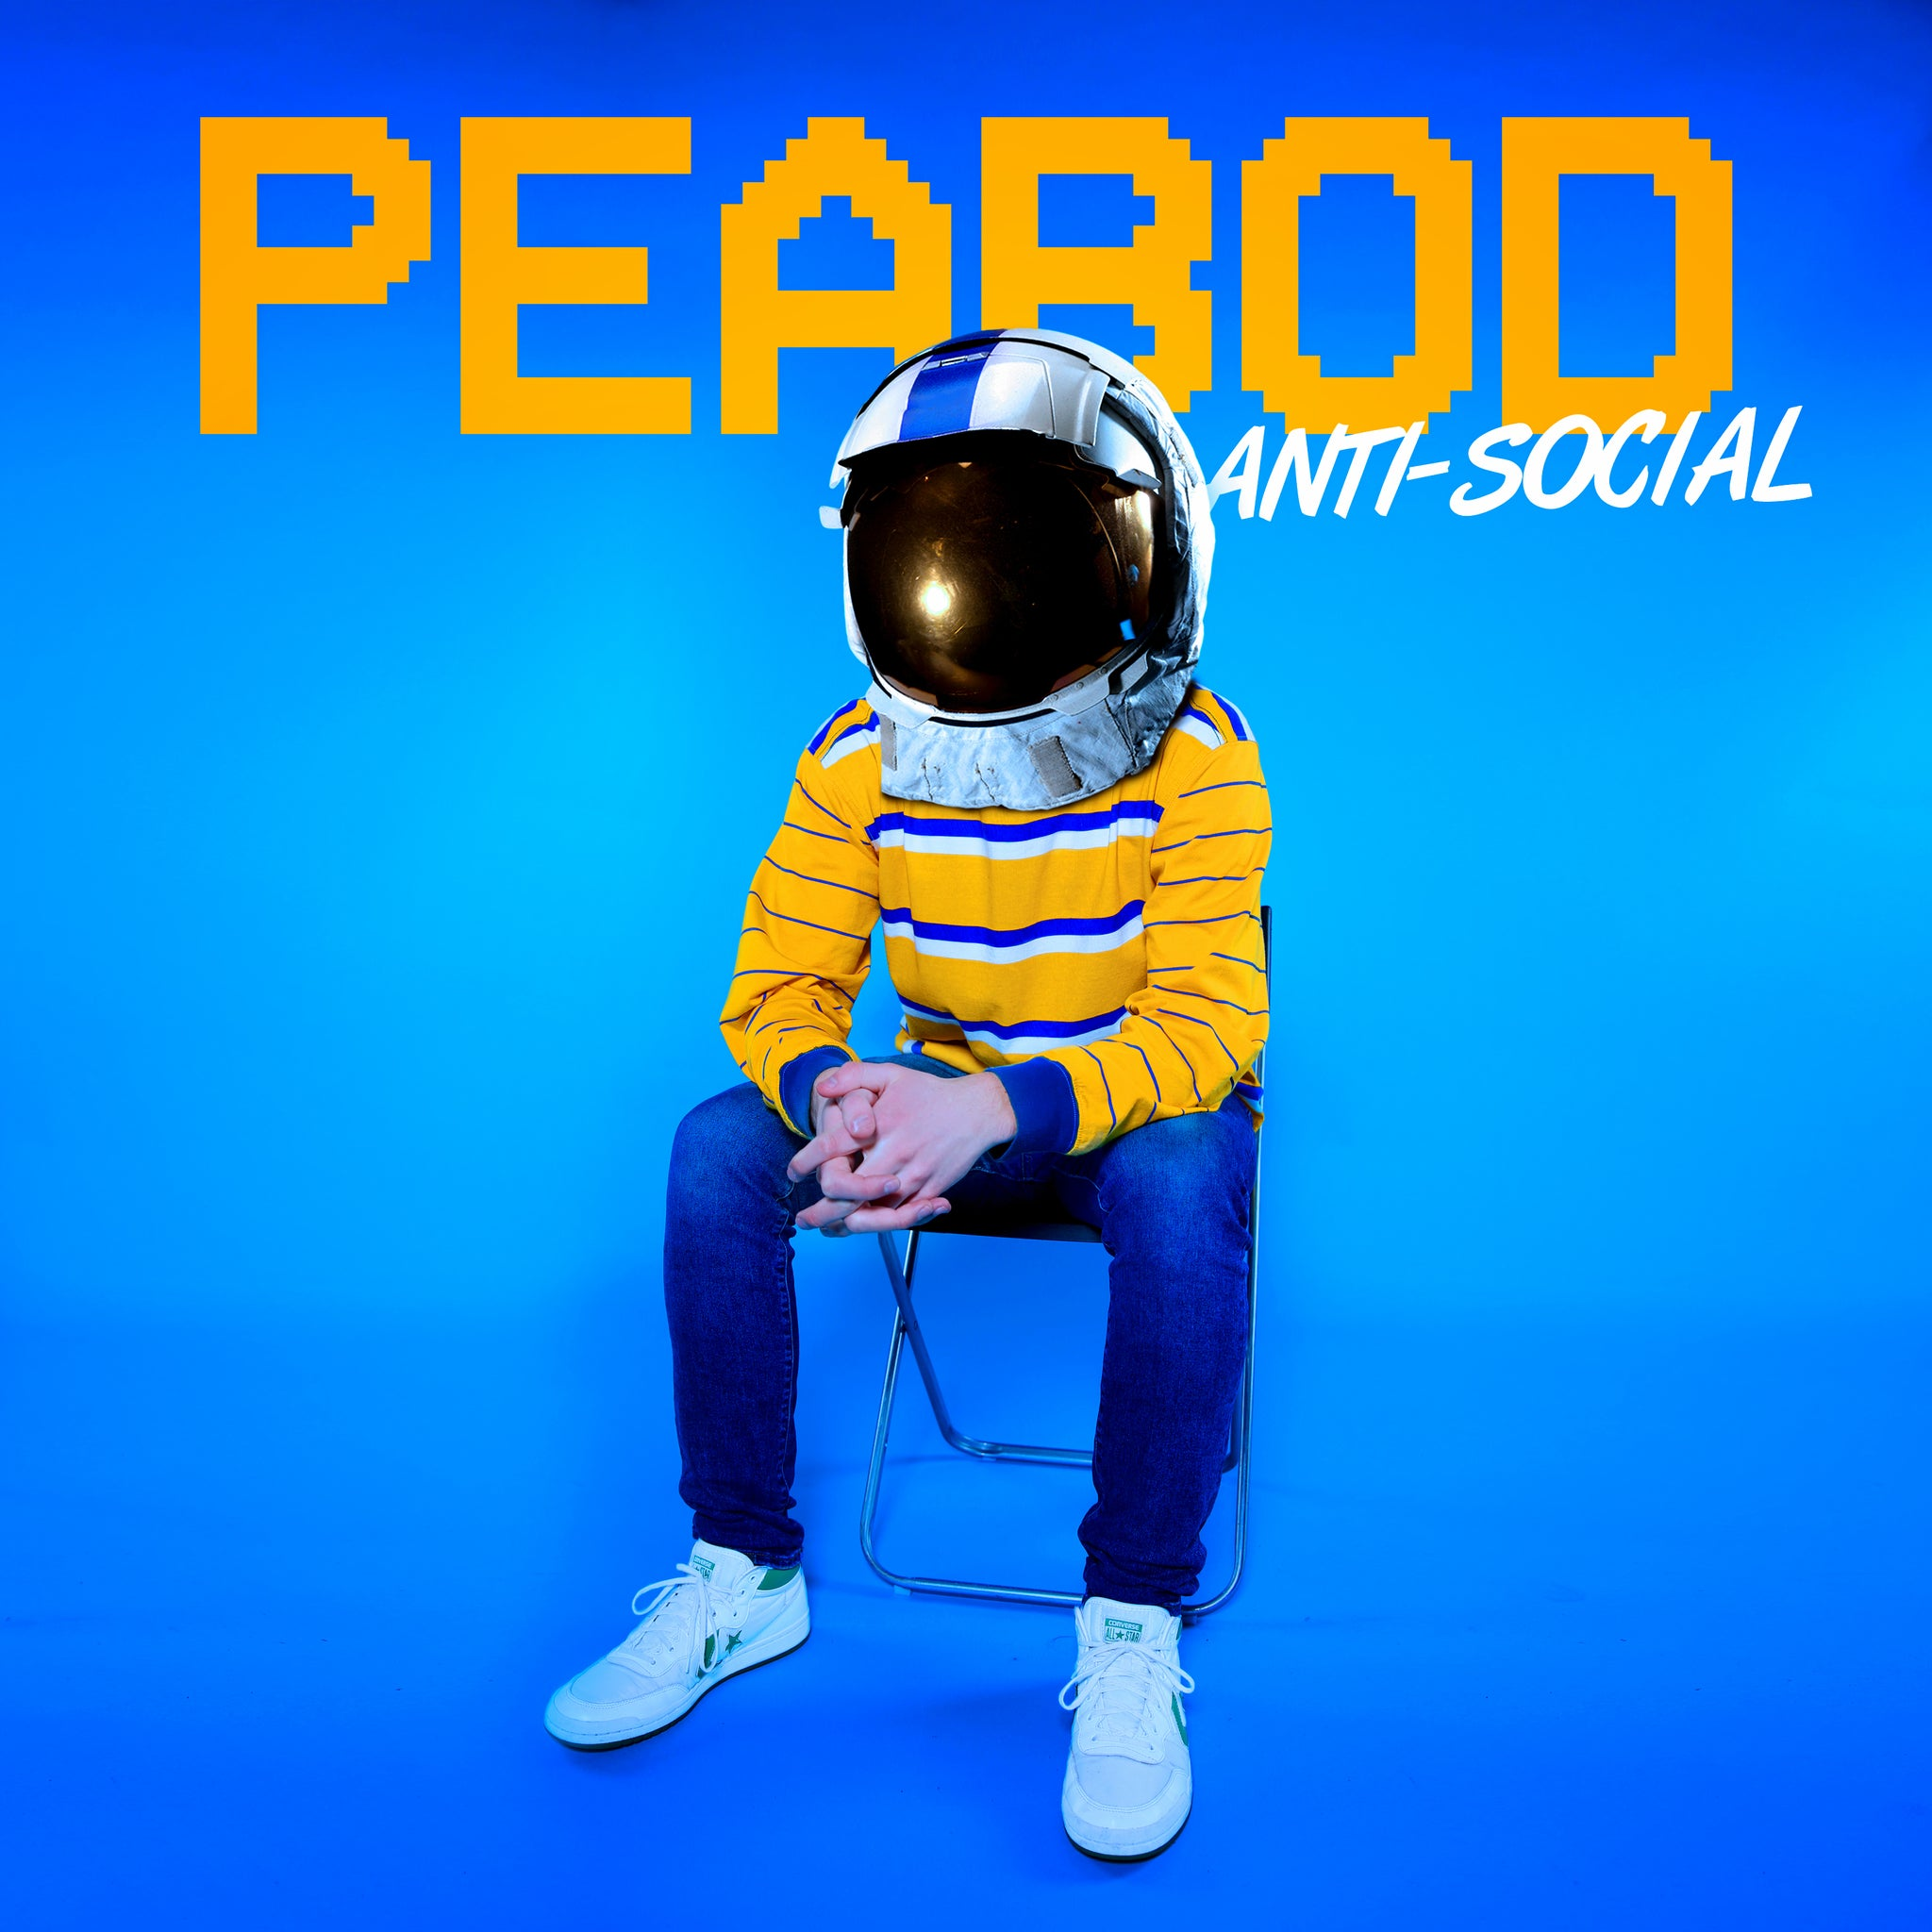 Anti-Social (Digital Single)